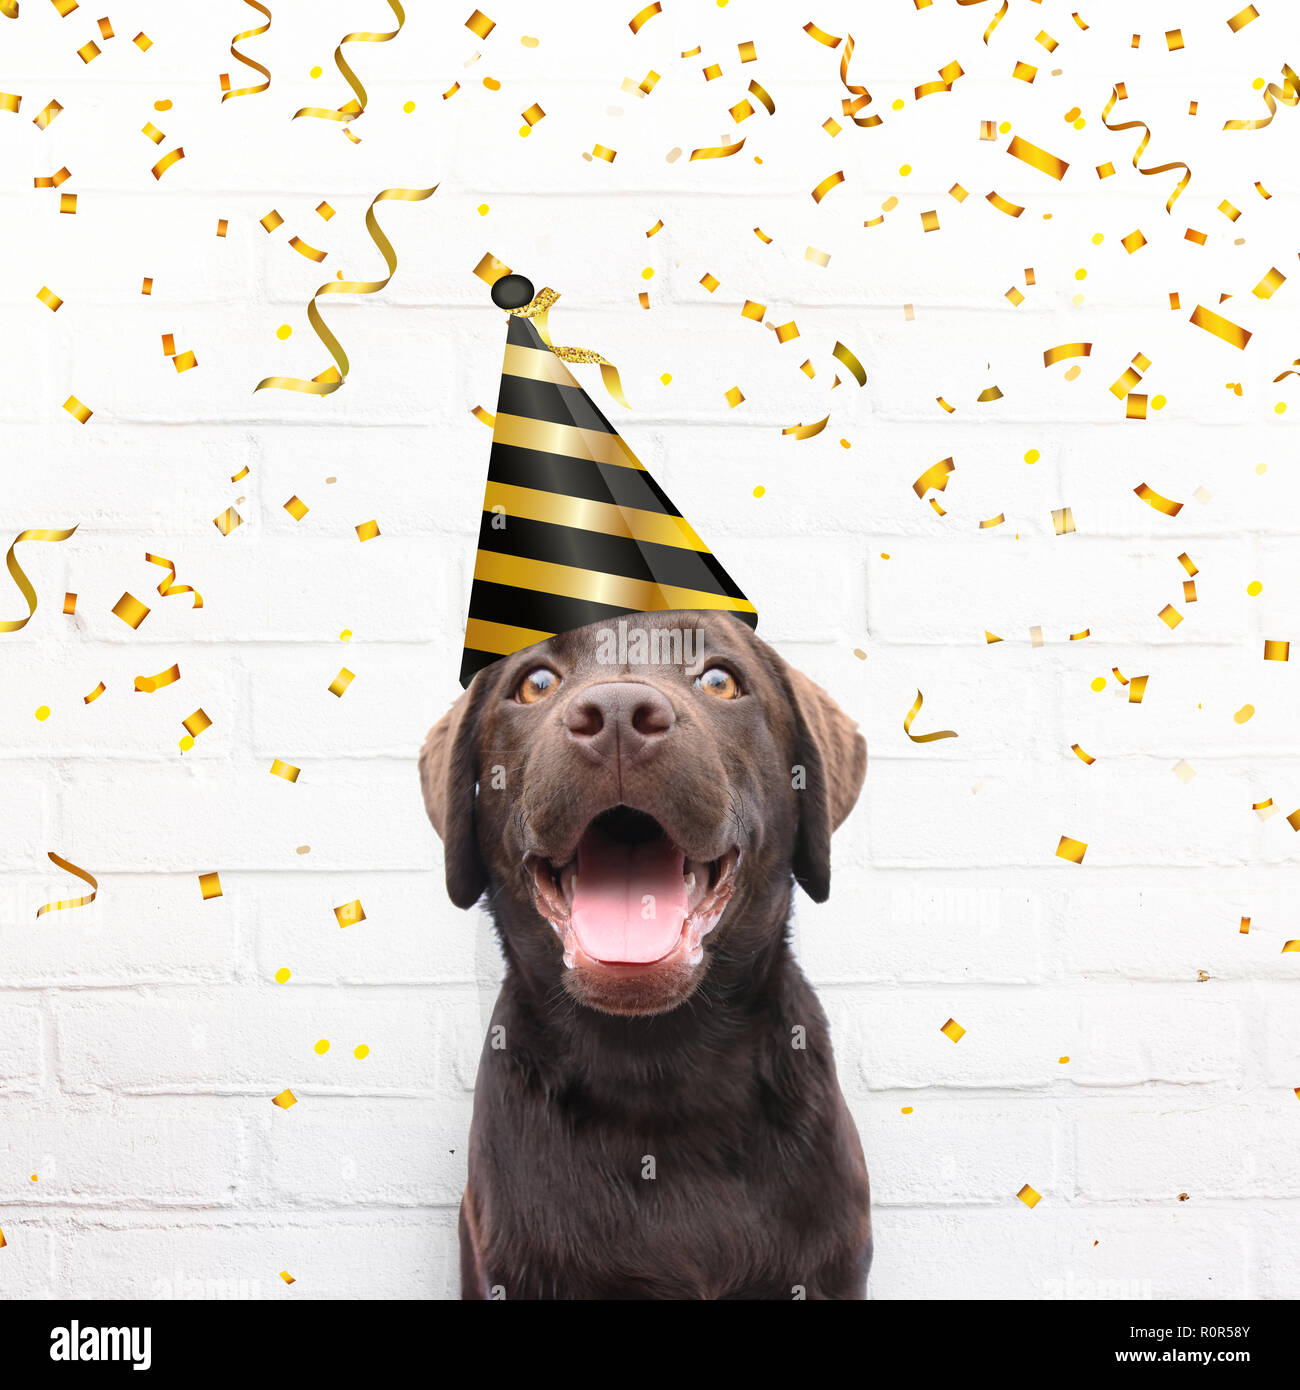 Happy Birthday Card Crazy Dog With Party Hat Is Smiling In De Camera Agianst White Brick Background Golden Confetti Celebrate His